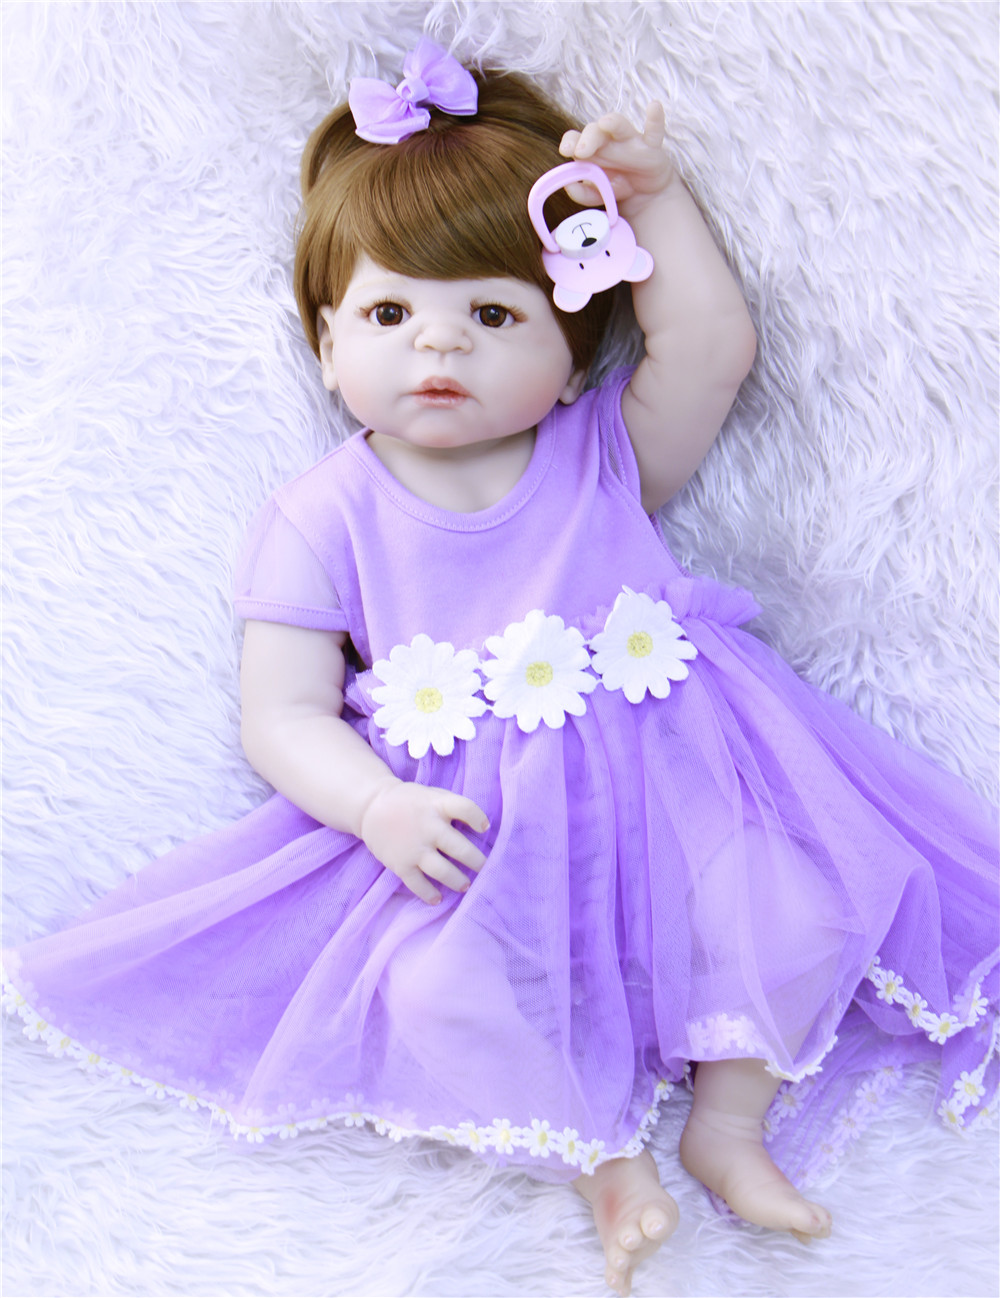 2357cm Full Body Silicone Reborn Baby Doll Toy  Newborn Girl Princess Toddler baby alive dolls bebe gift reborn bonecas2357cm Full Body Silicone Reborn Baby Doll Toy  Newborn Girl Princess Toddler baby alive dolls bebe gift reborn bonecas